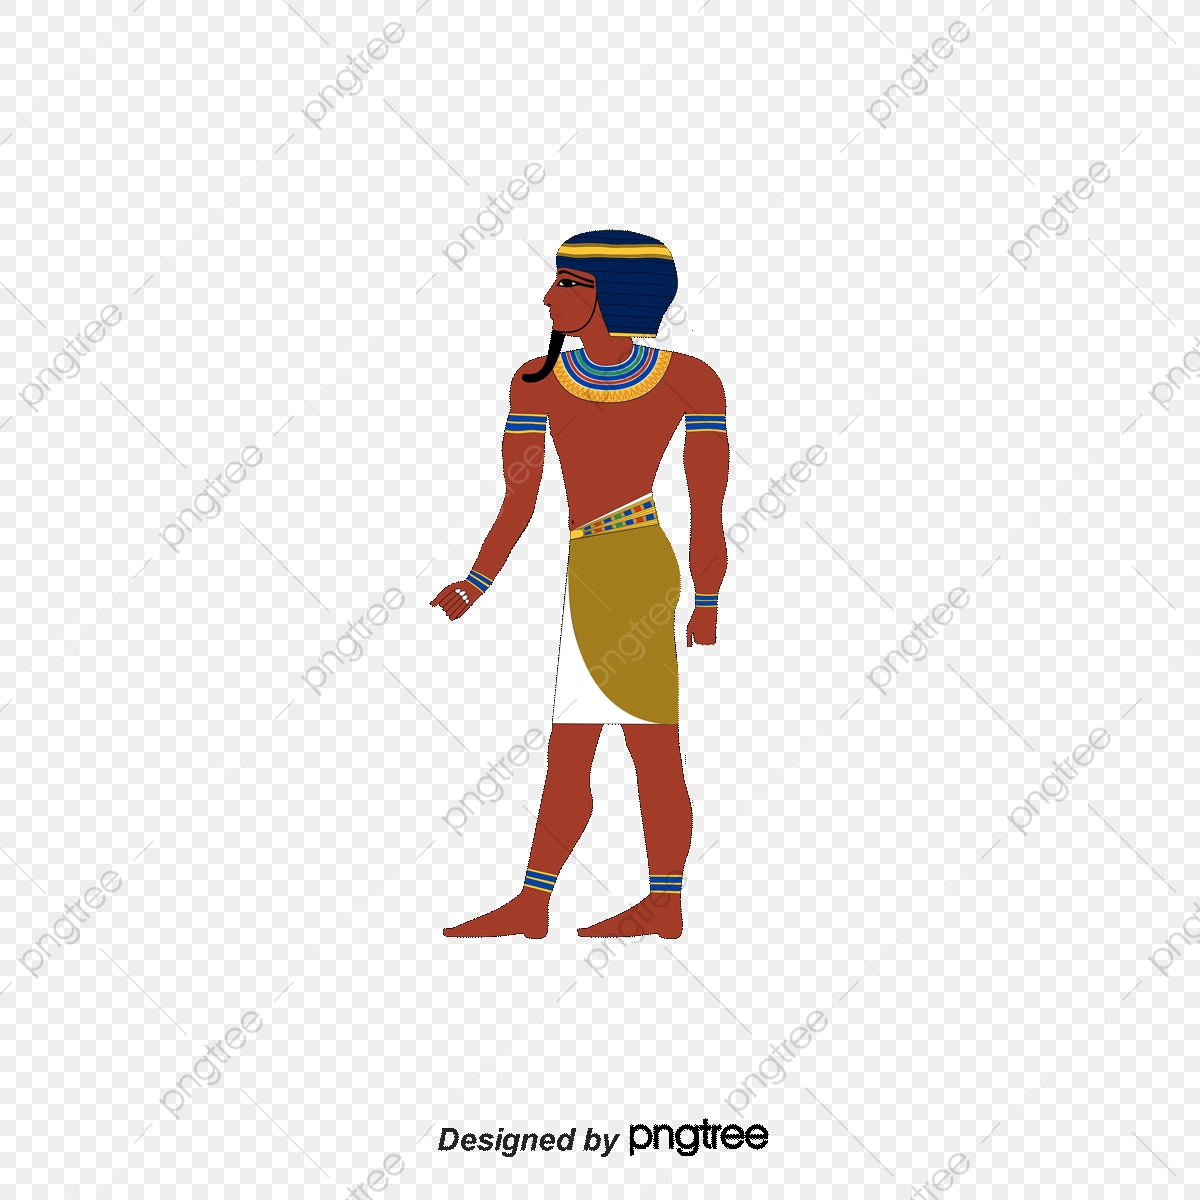 Cartoon Painted Ancient Egyptian Gods Cartoon Gods Painted God Vector Ancient Egypt Png Transparent Clipart Image And Psd File For Free Download